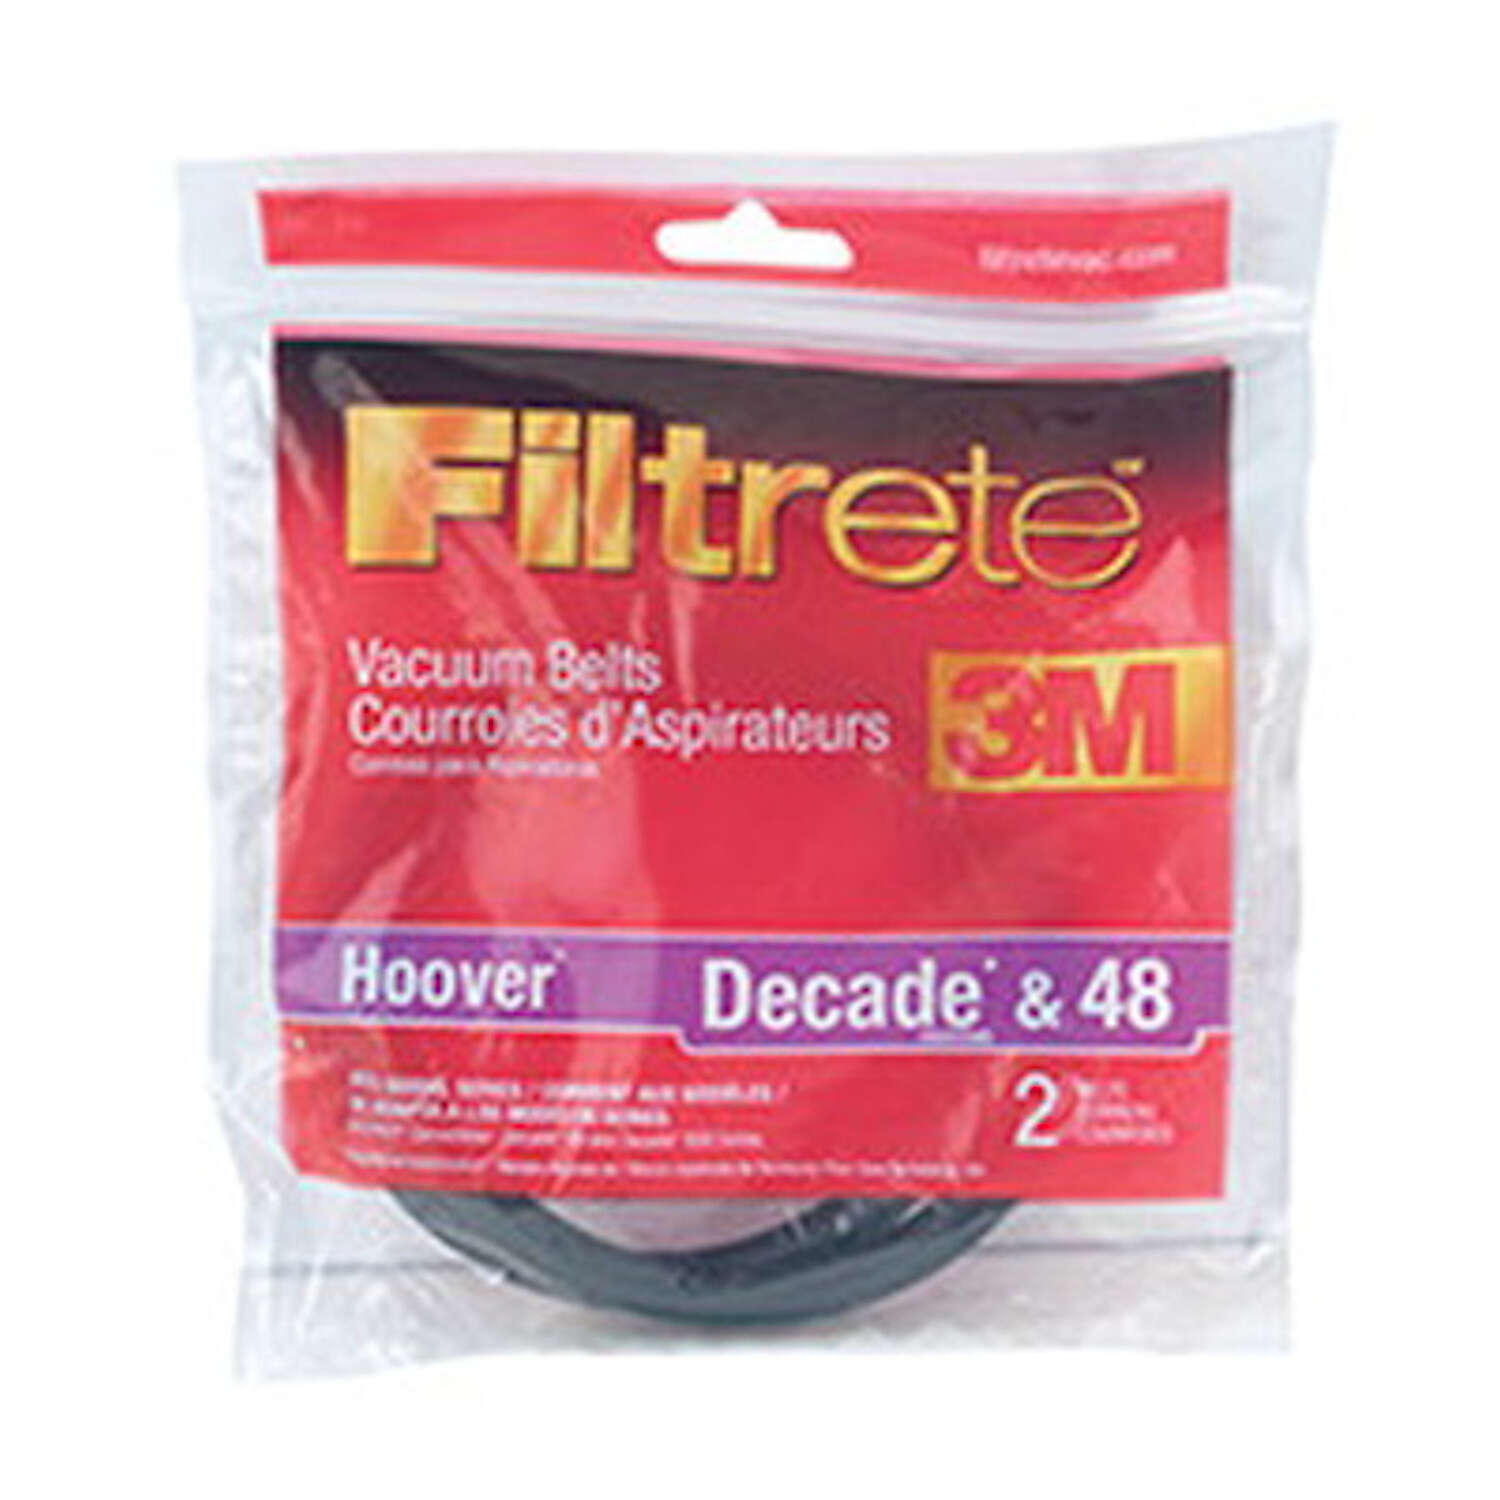 Filtrete  Vacuum Belt   Hoover Decade and 48 Pack 2